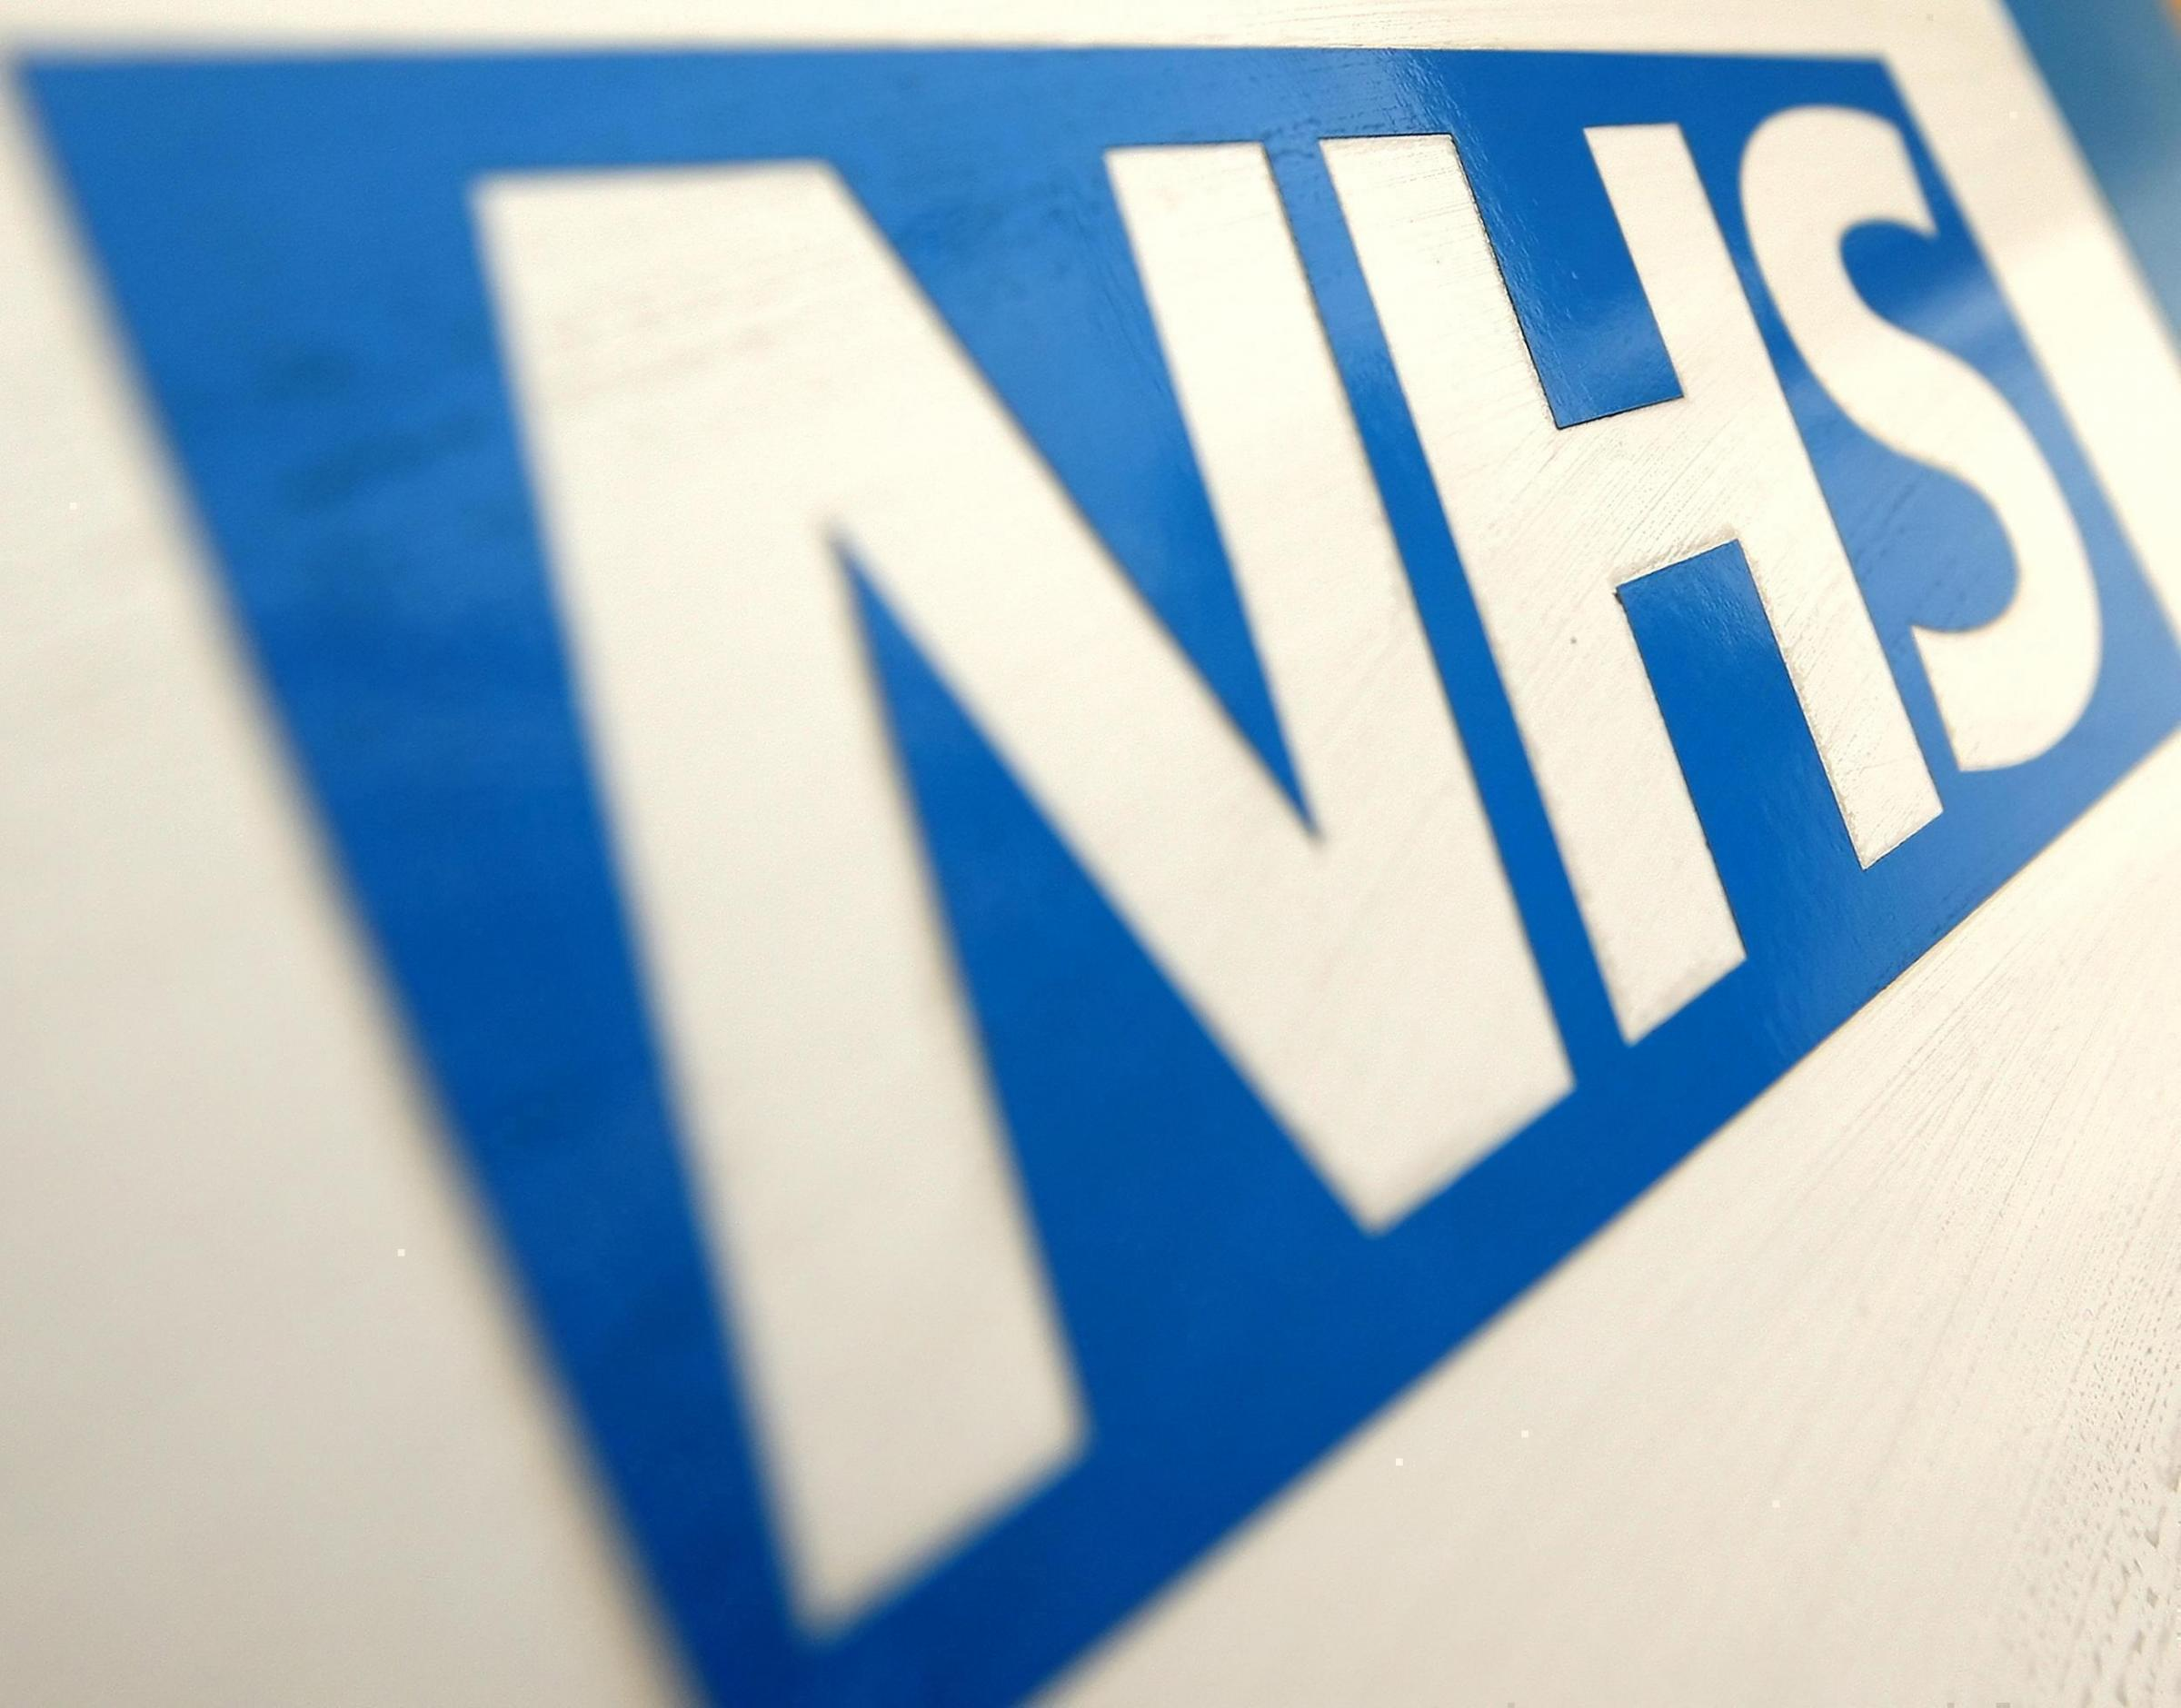 Protest to highlight threat to NHS